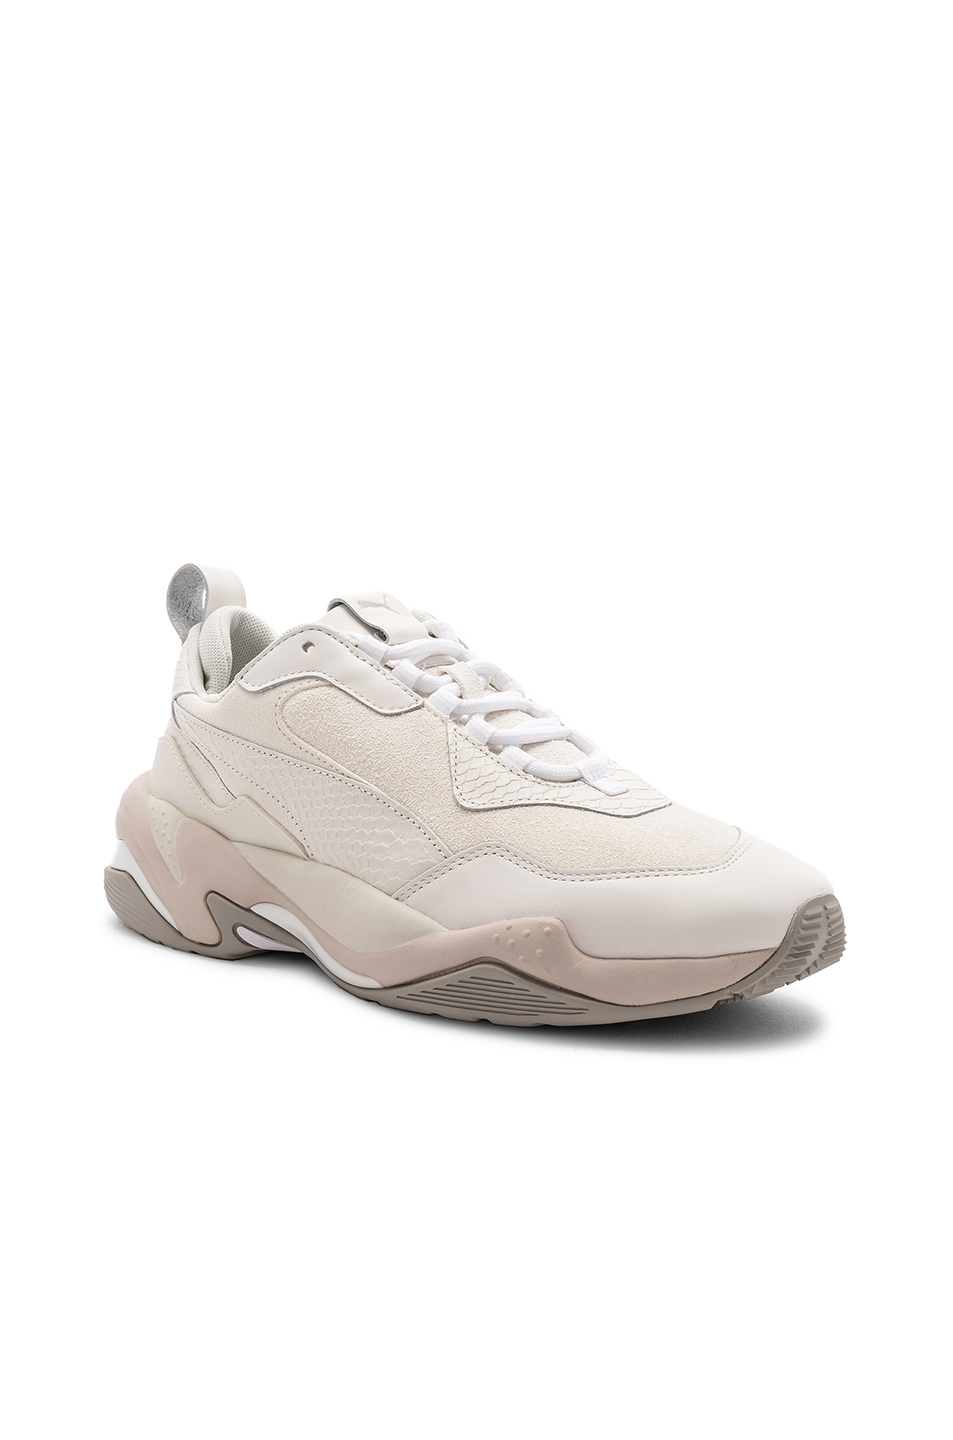 043e621b8be2 Puma Select Thunder Desert  Puma Select Thunder Desert ...